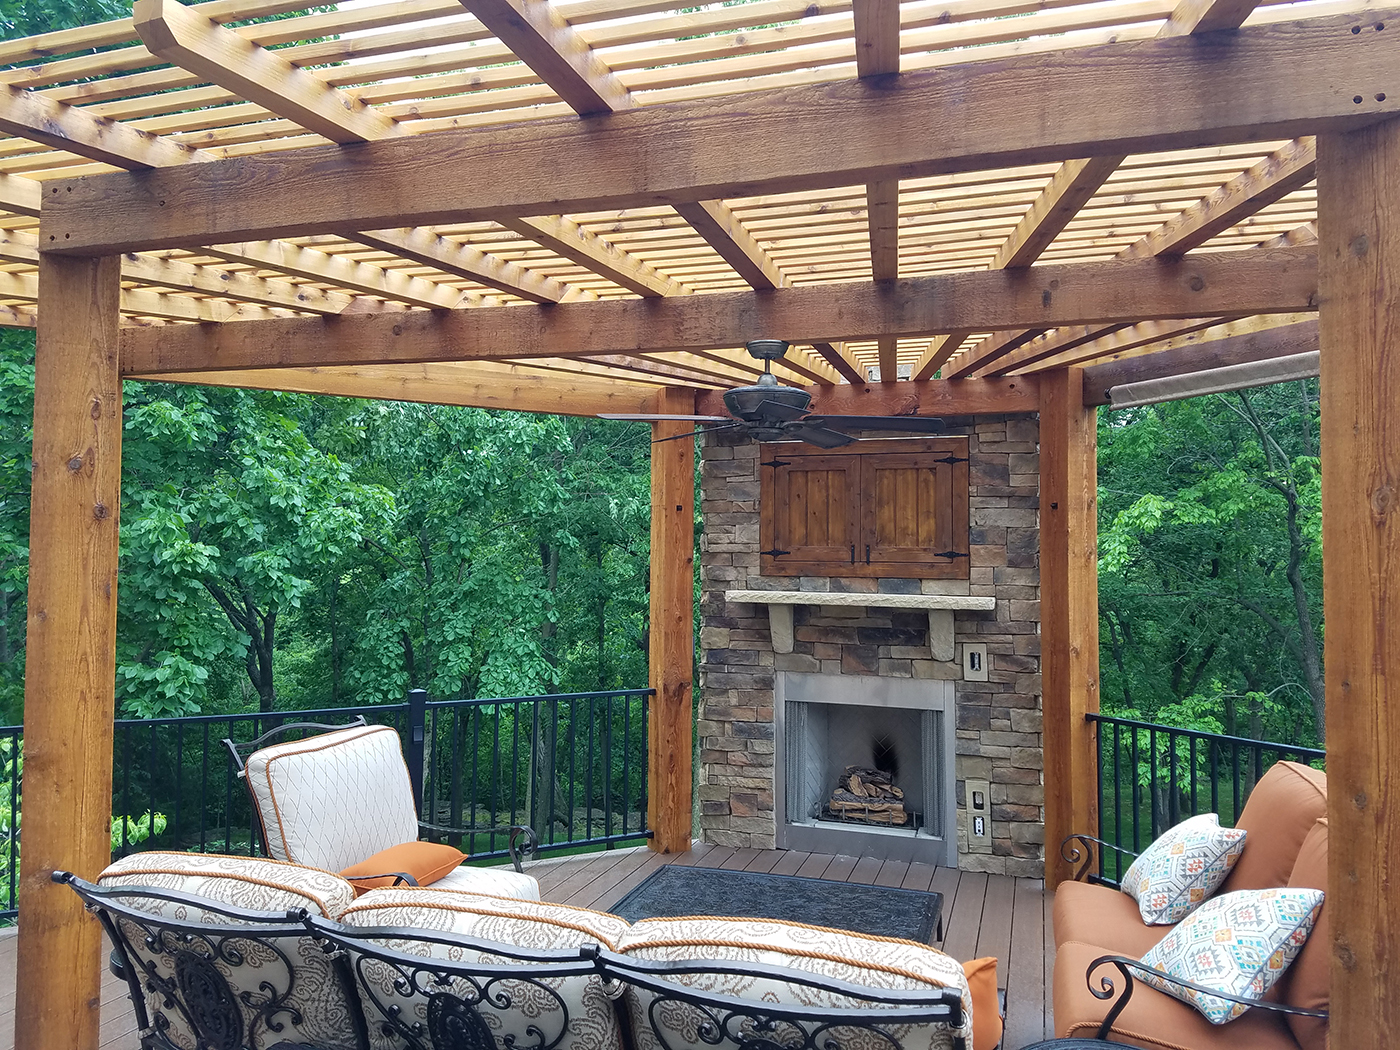 Blog | Archadeck Outdoor Living on Outdoor Gas Fireplace For Deck id=98755